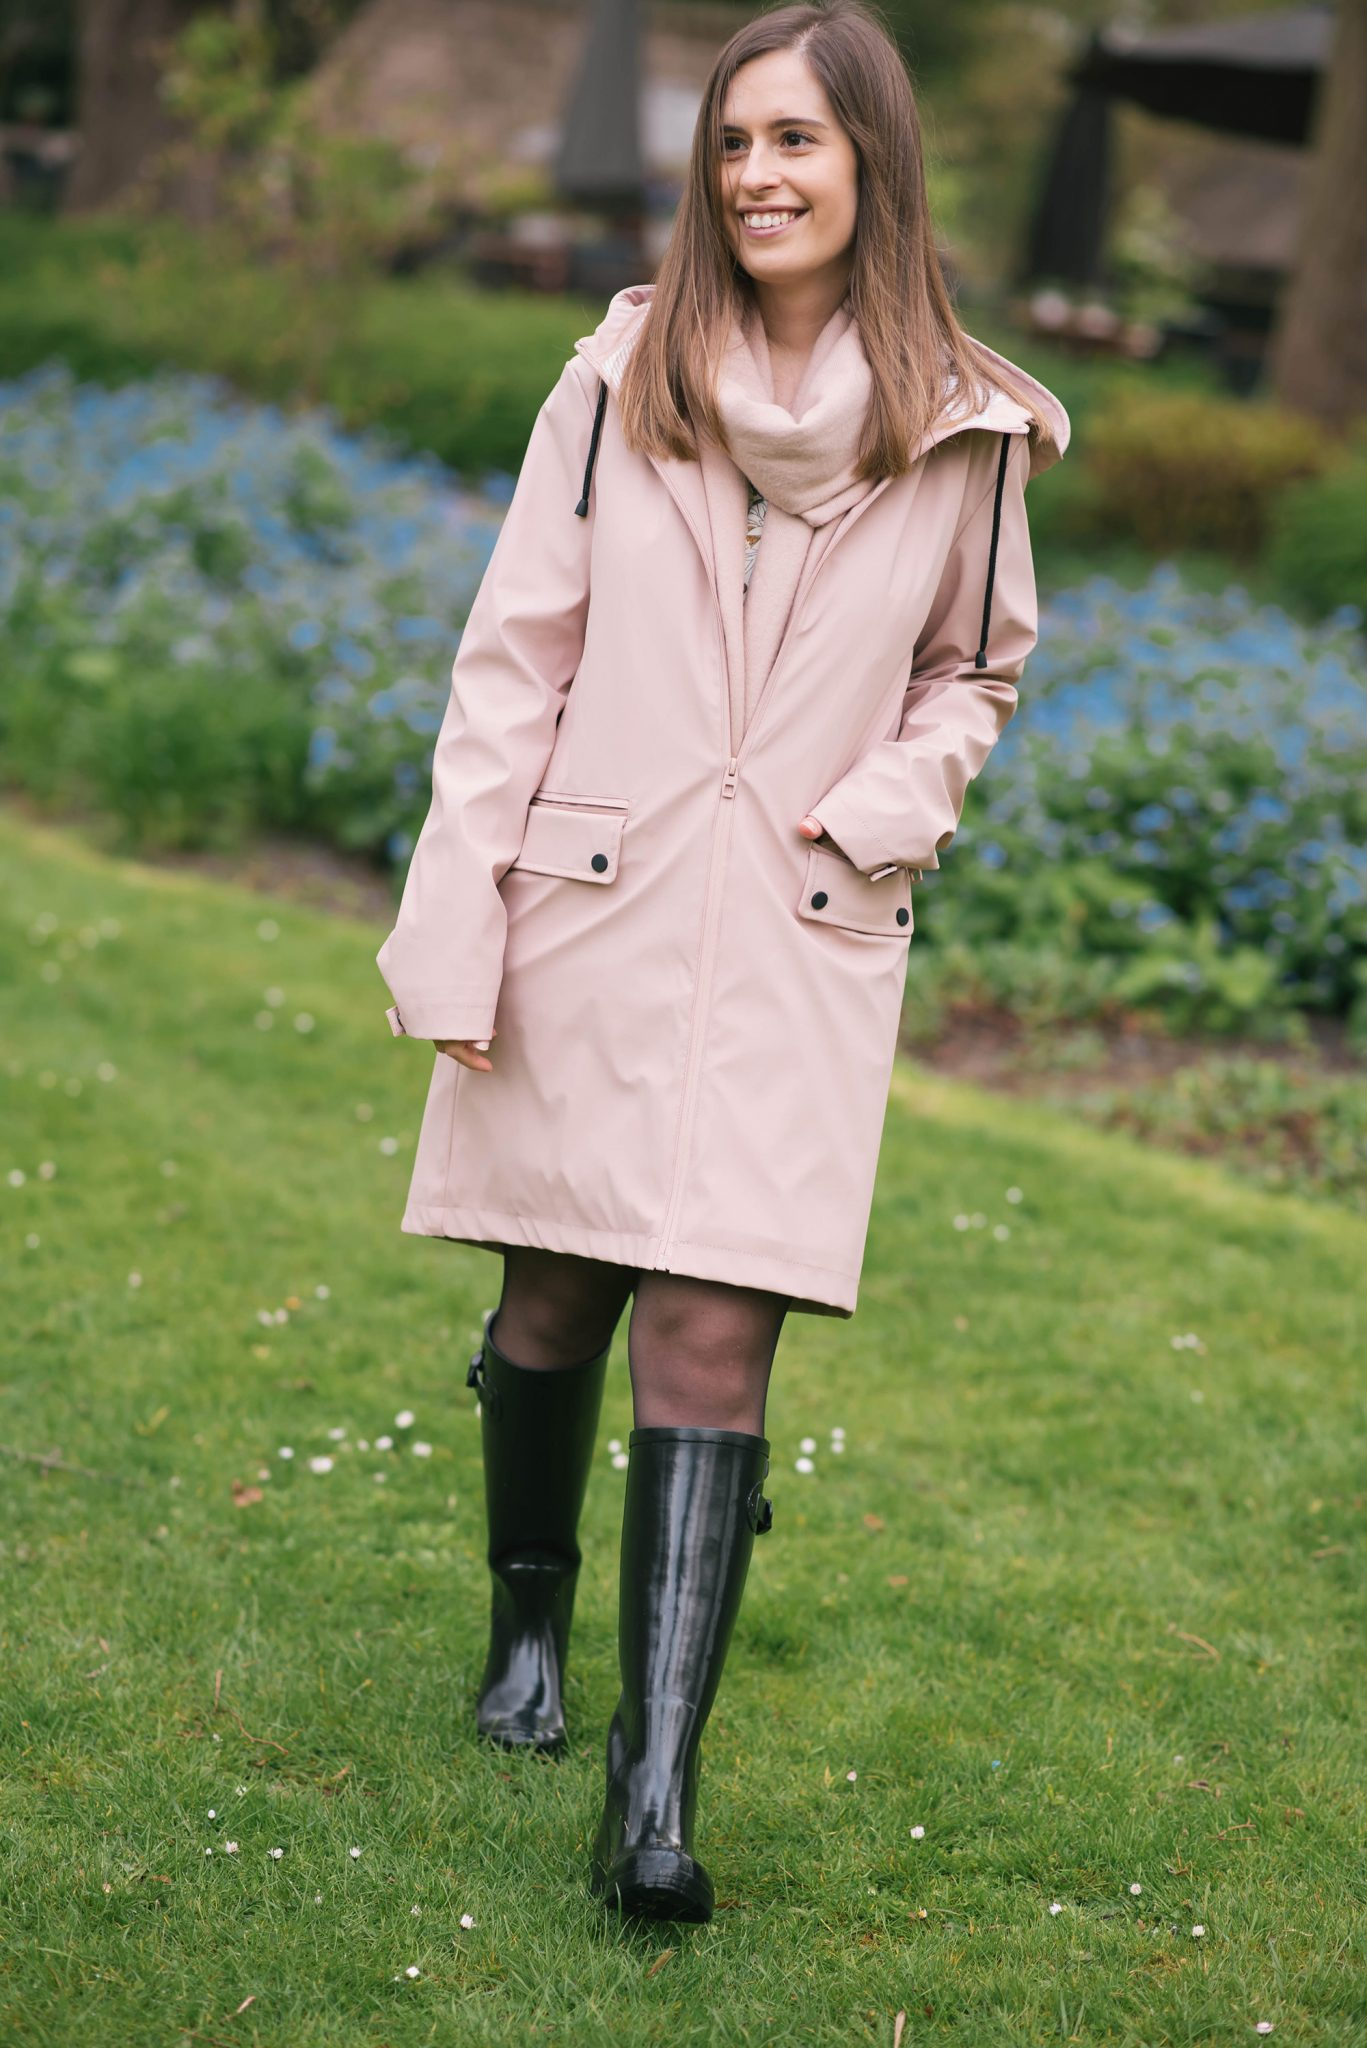 a-pink-raincoat-thepetitecat-stylish-raincoat-spring